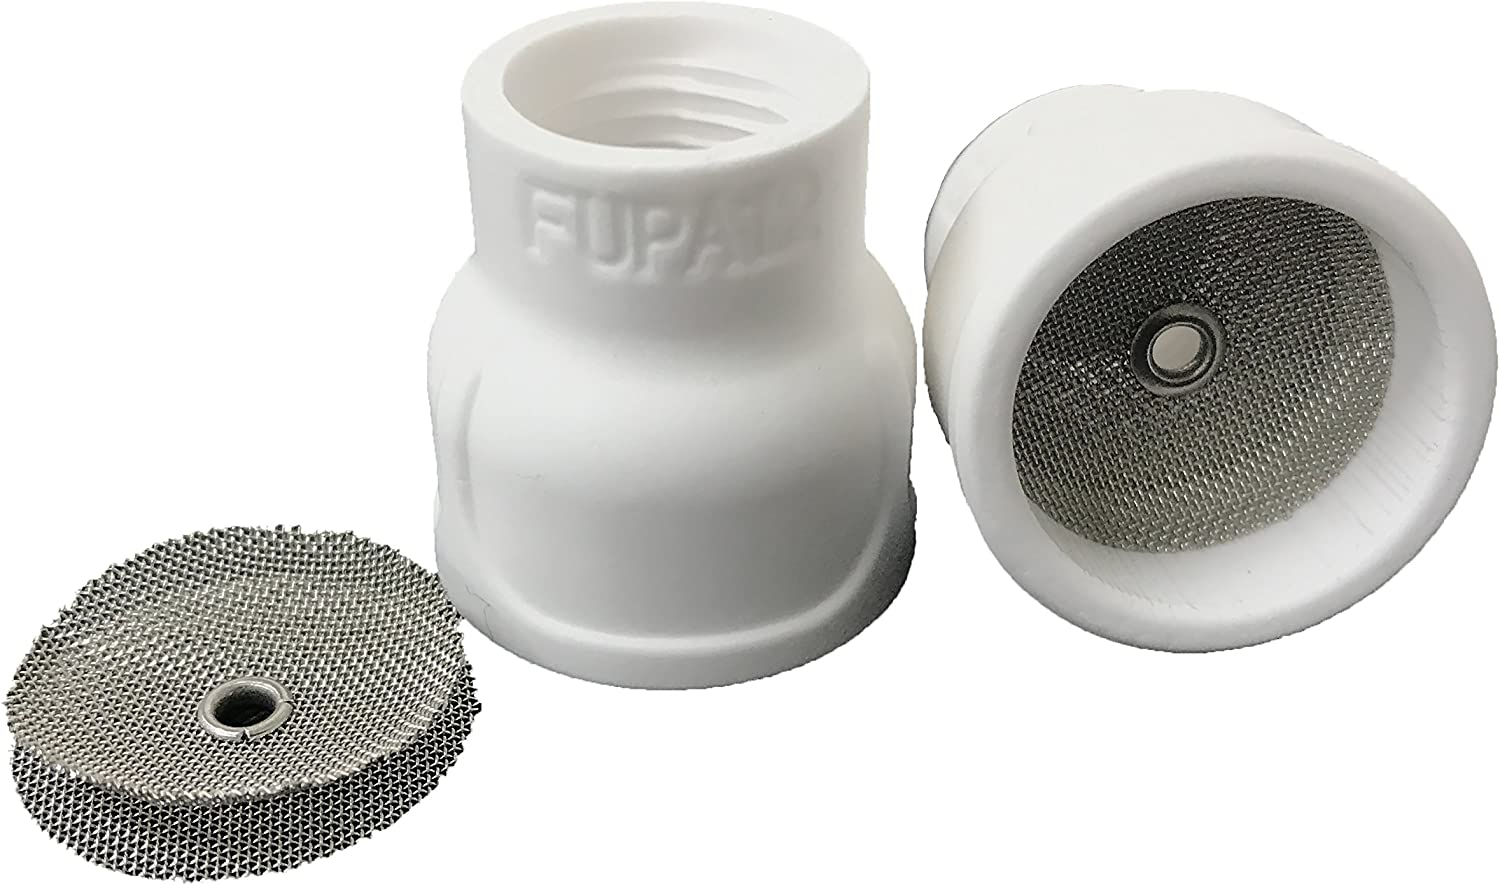 Twin Pack Furick TIG Welding Equipment Cup FUPA 12 Ceramic